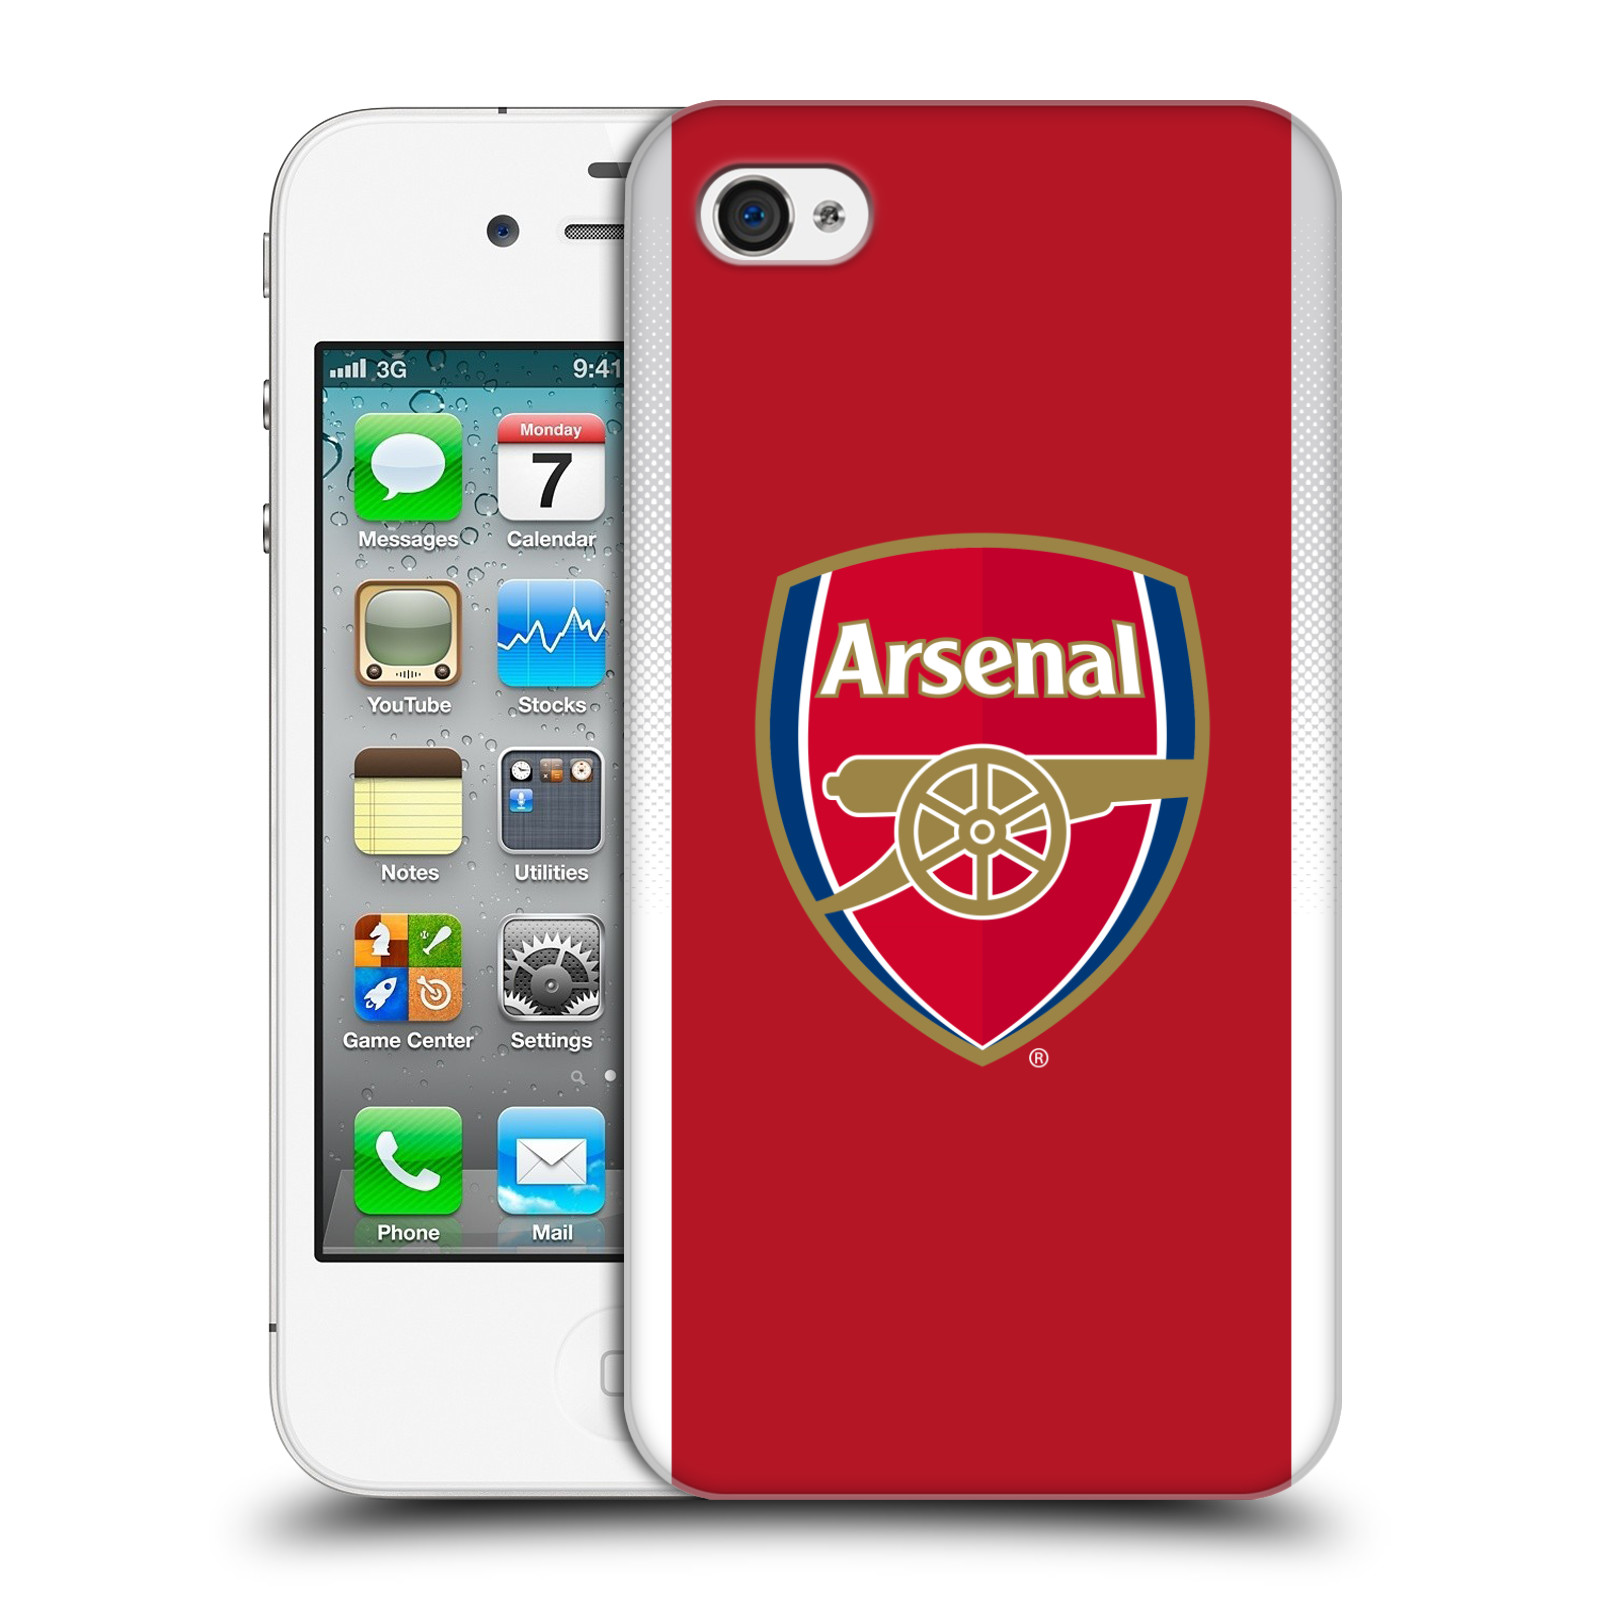 Plastové pouzdro na mobil Apple iPhone 4 a 4S - Head Case - Arsenal FC - Logo klubu